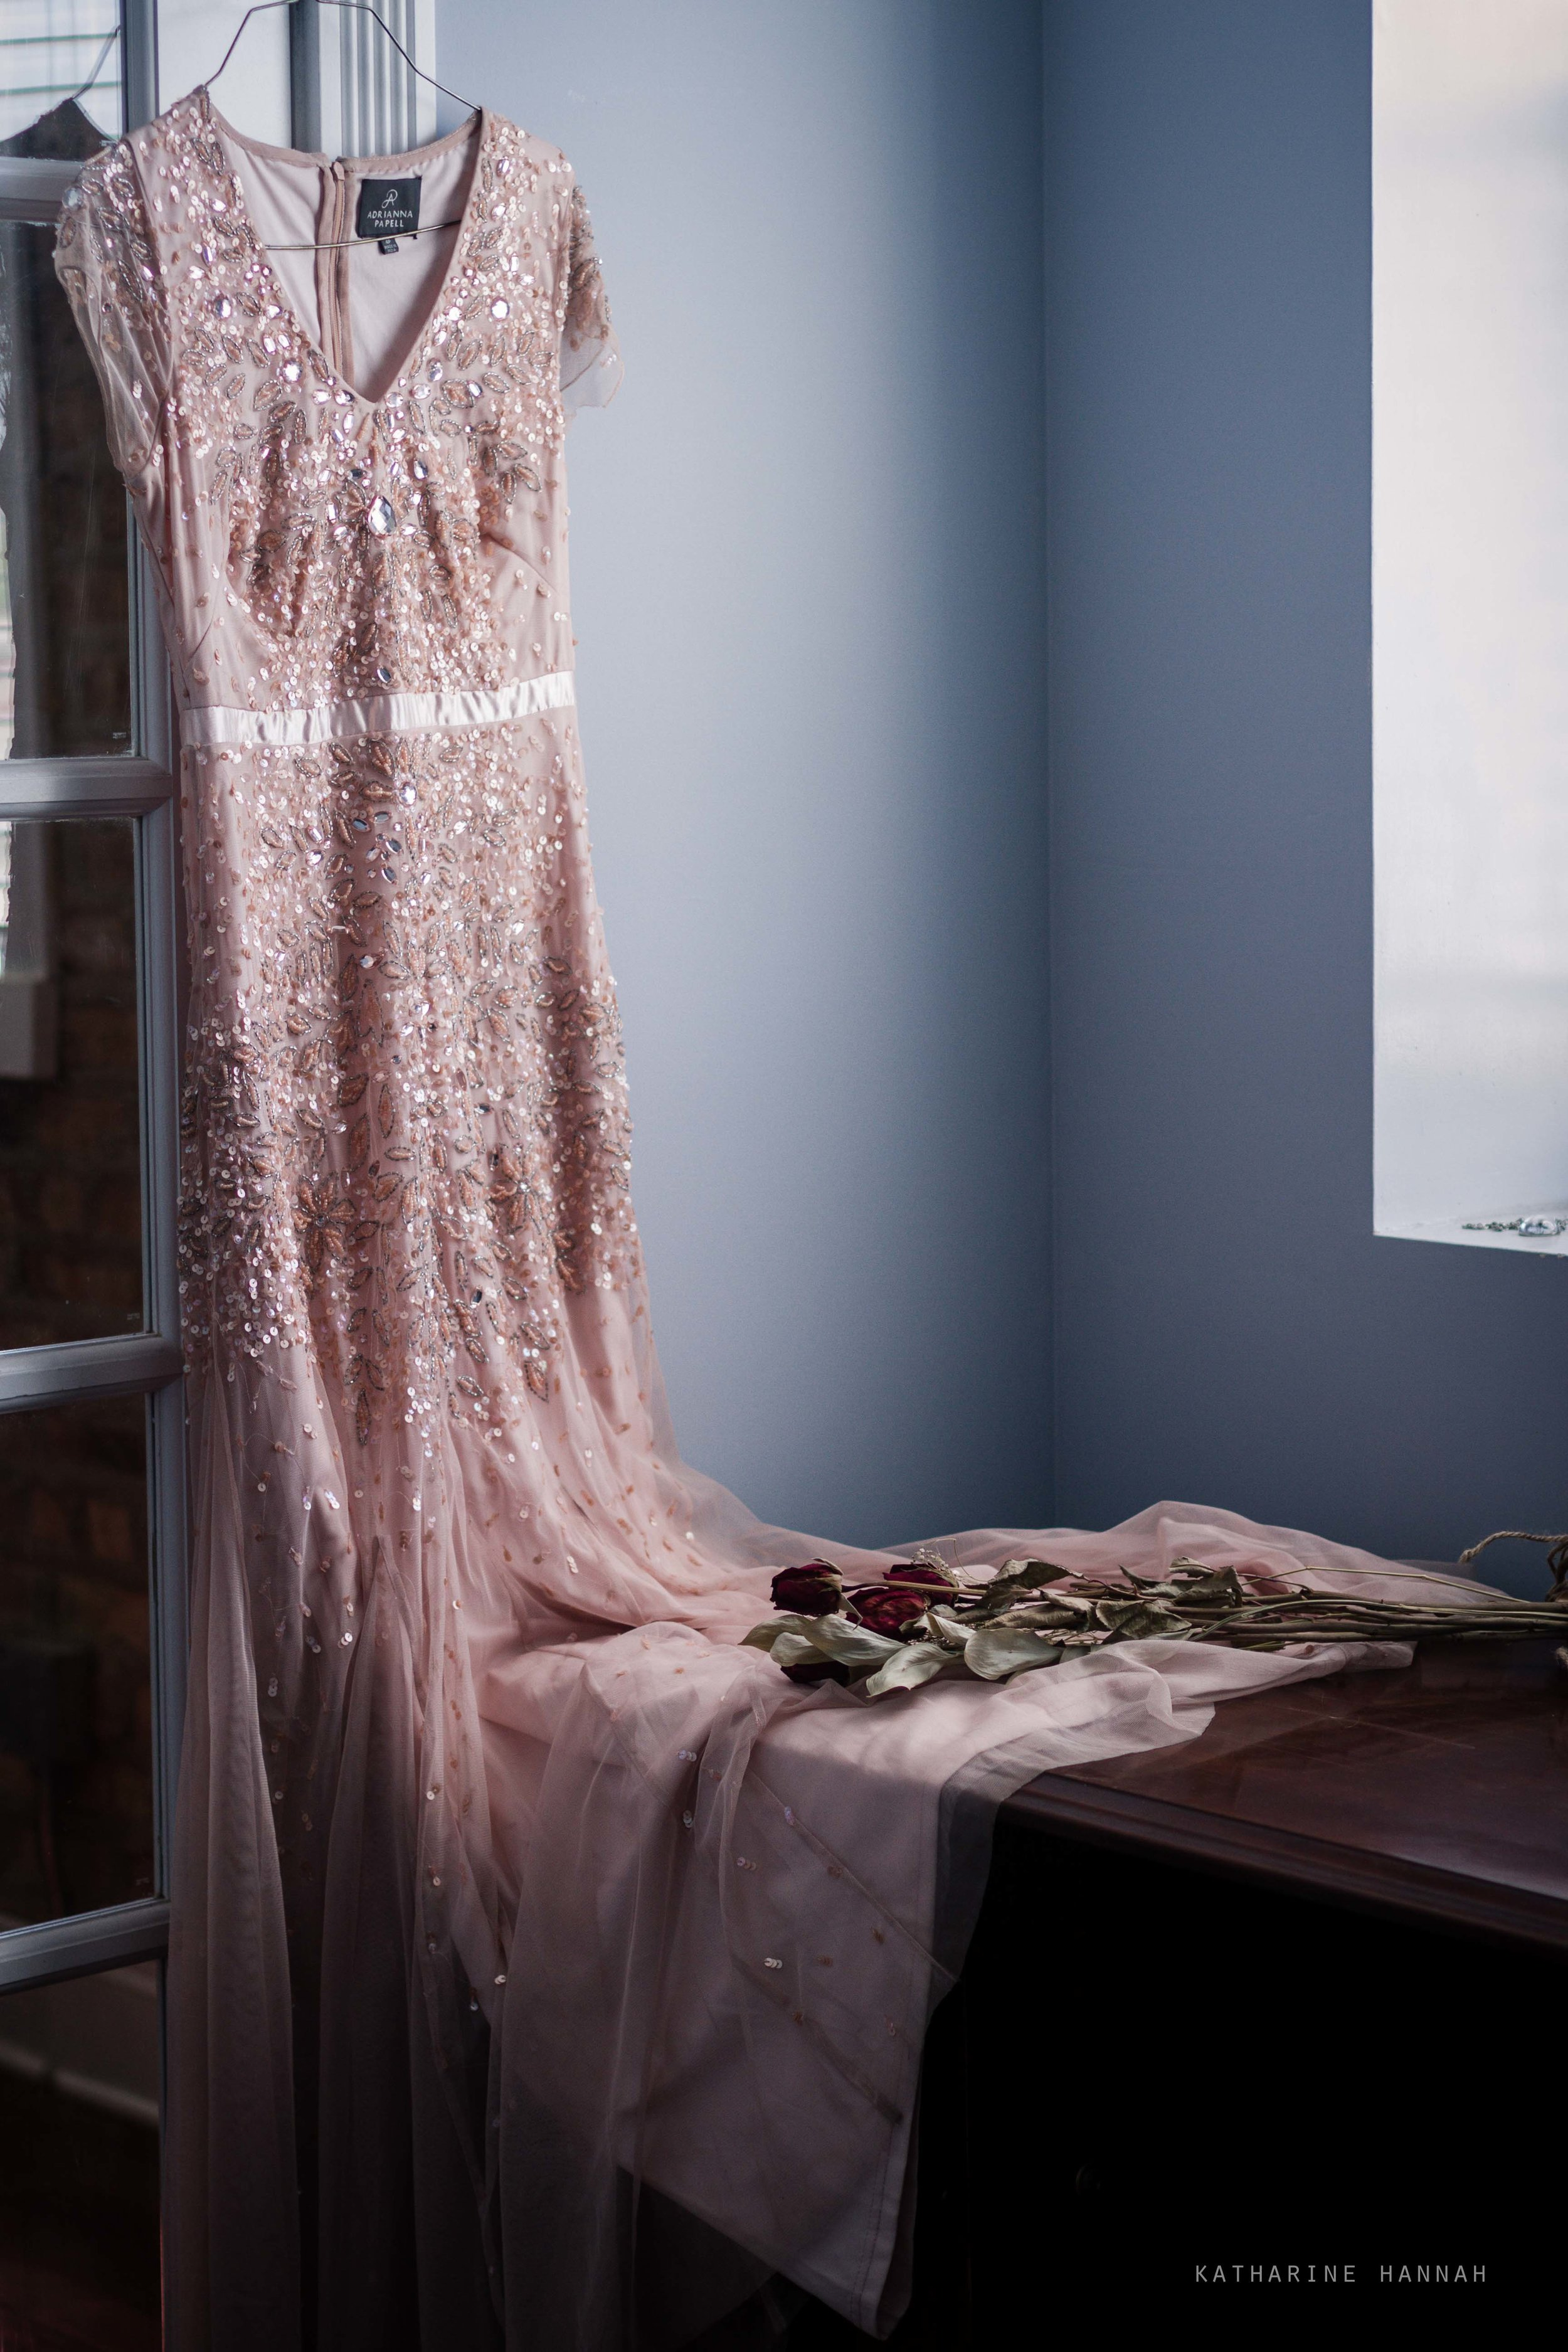 Adrianna Papell gown in Chicago photo studio